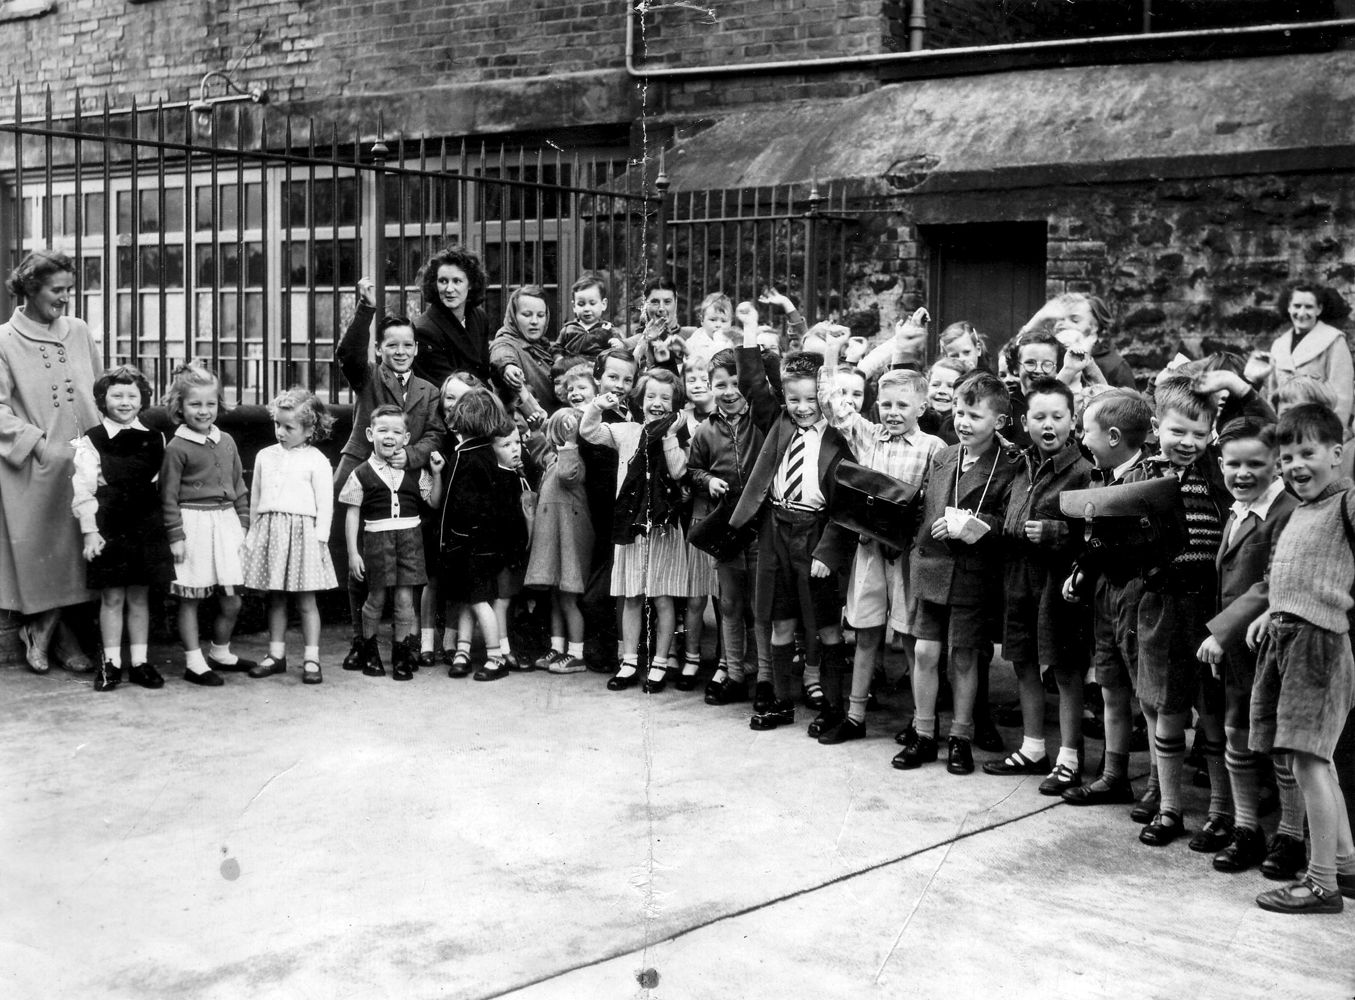 Group Of Children Lined Up In School Playground 1950s